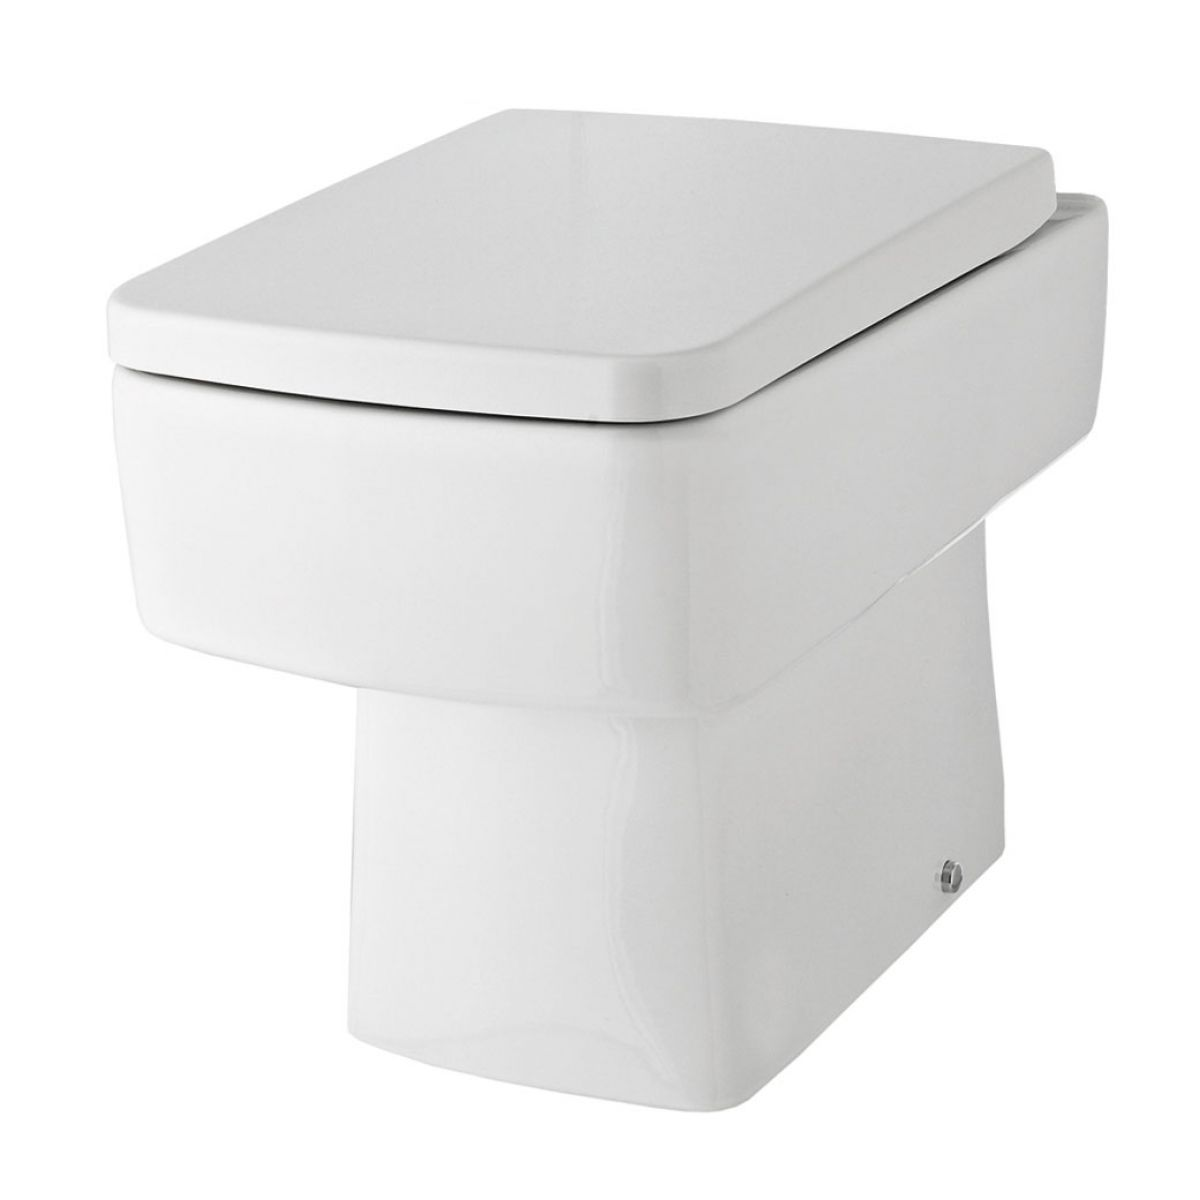 Premier Bliss Back To Wall Toilet with Soft Close Seat